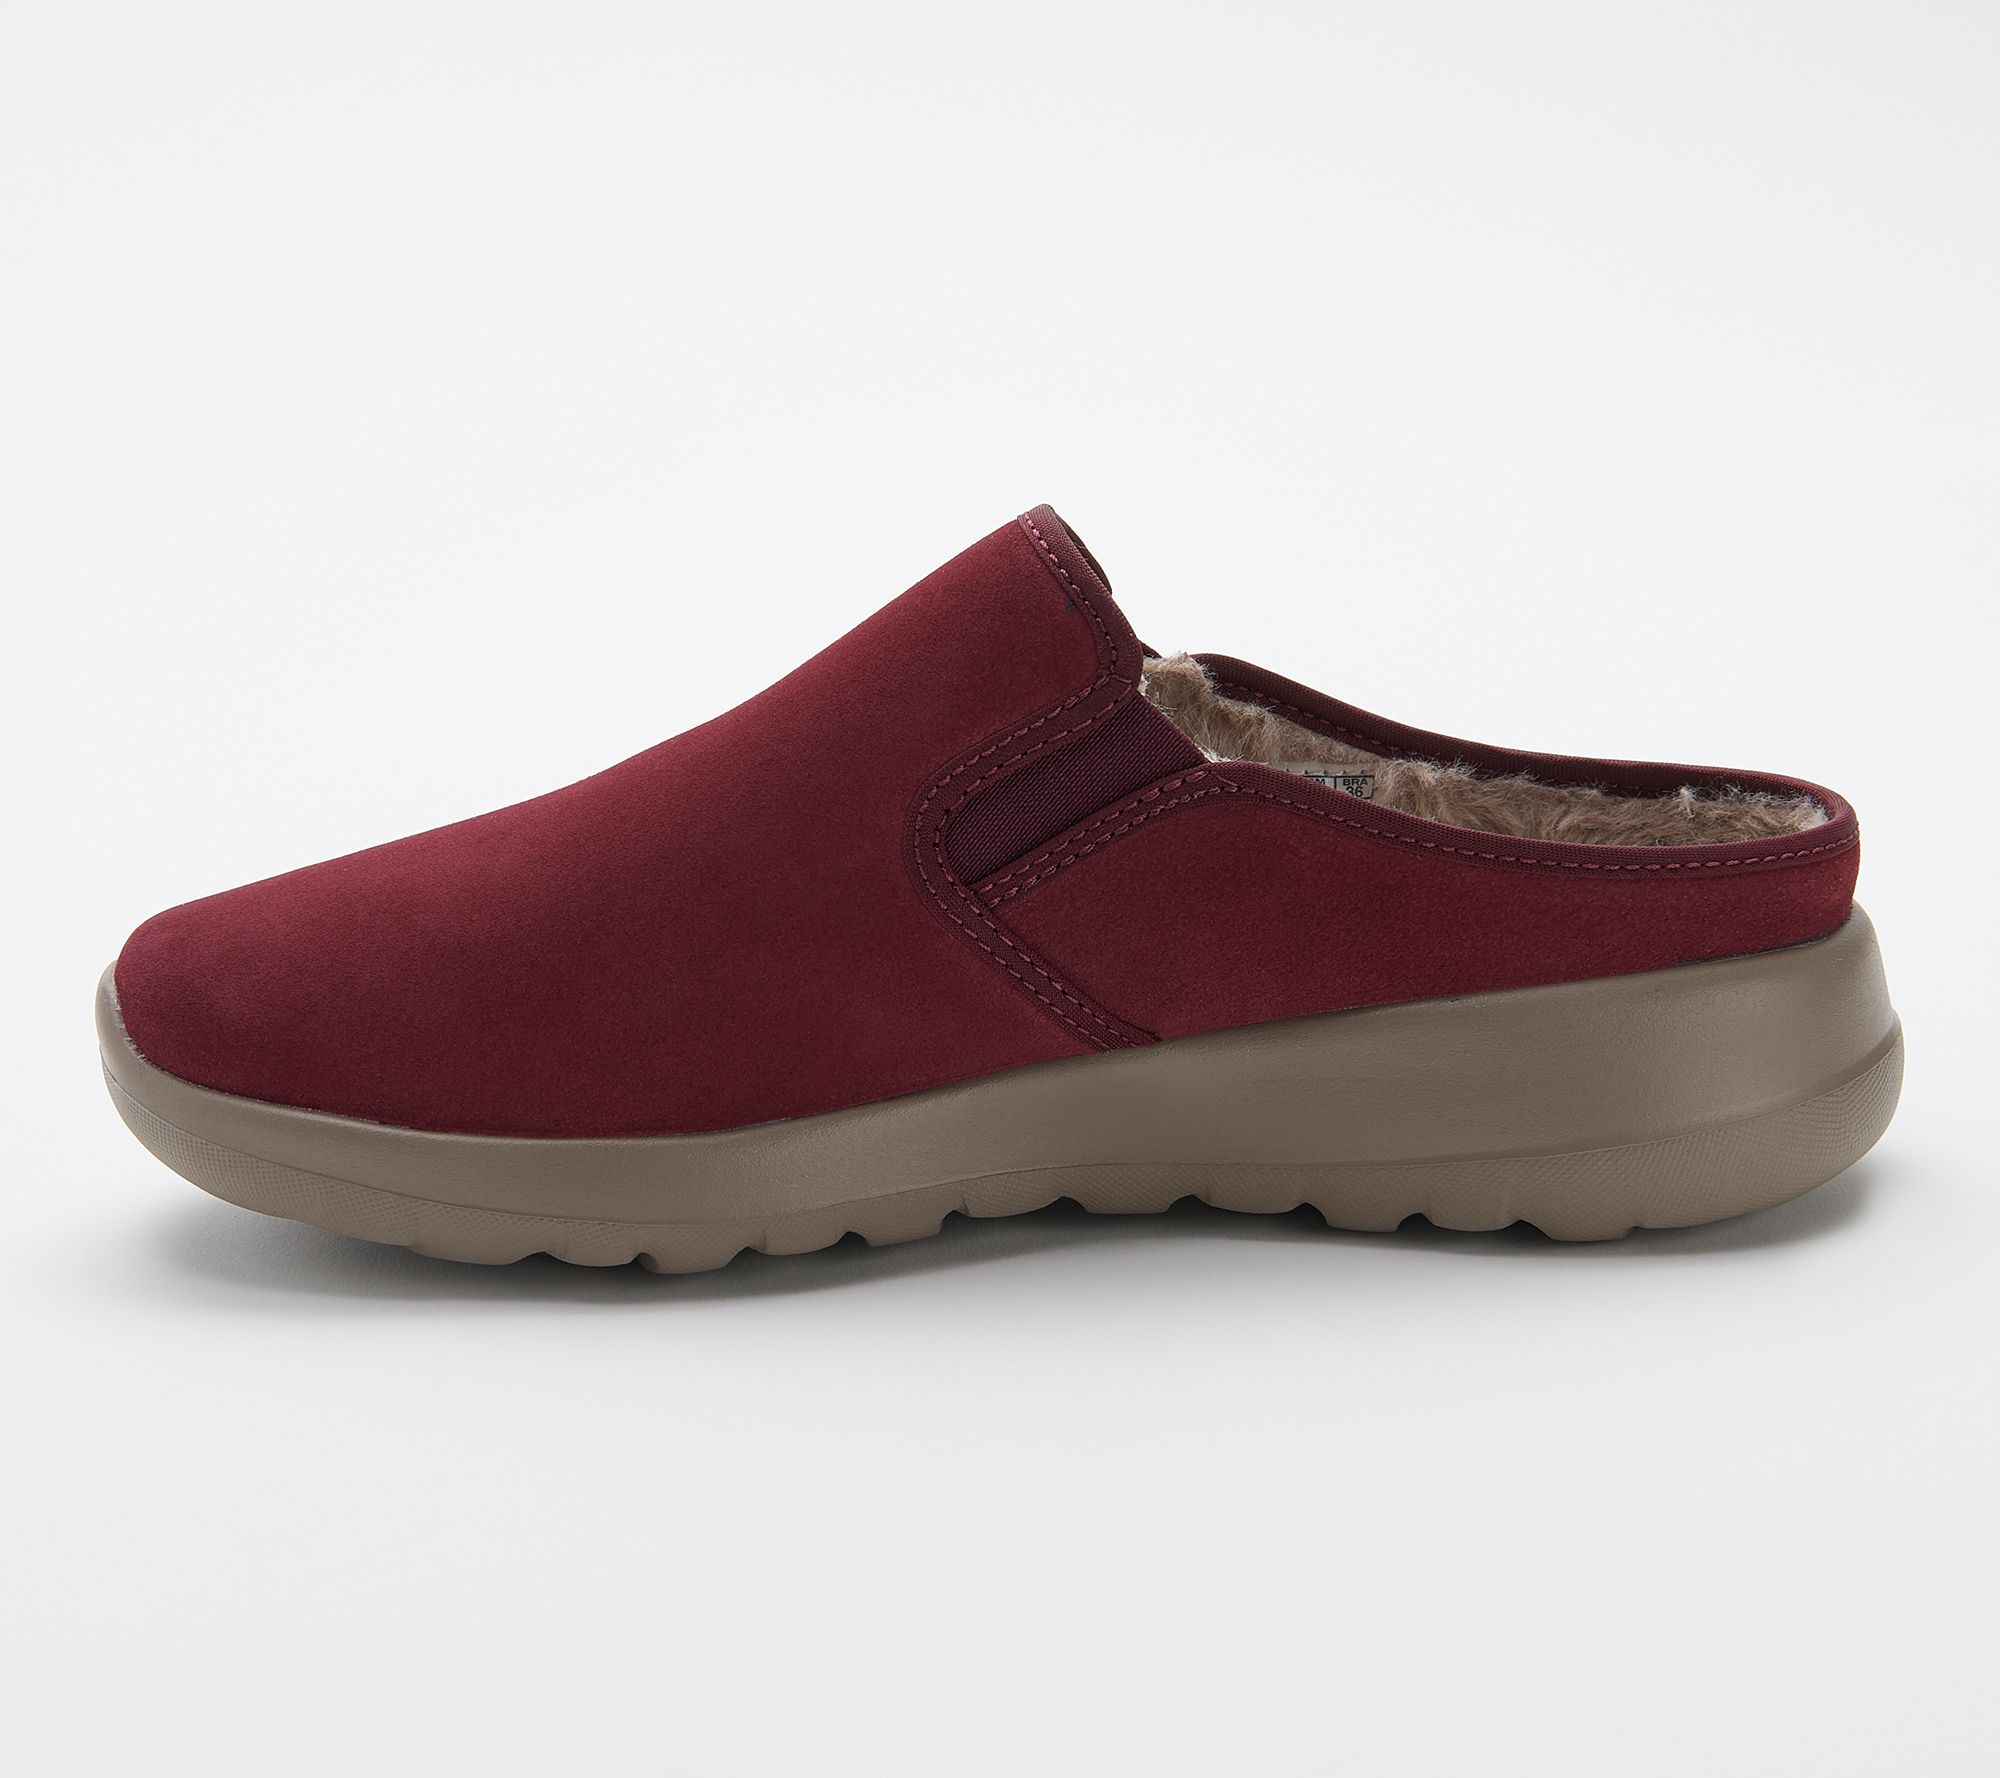 6841f6867821 Skechers GOWalk Joy Water-Repellant Suede Clogs - Snuggly - Page 1 — QVC.com